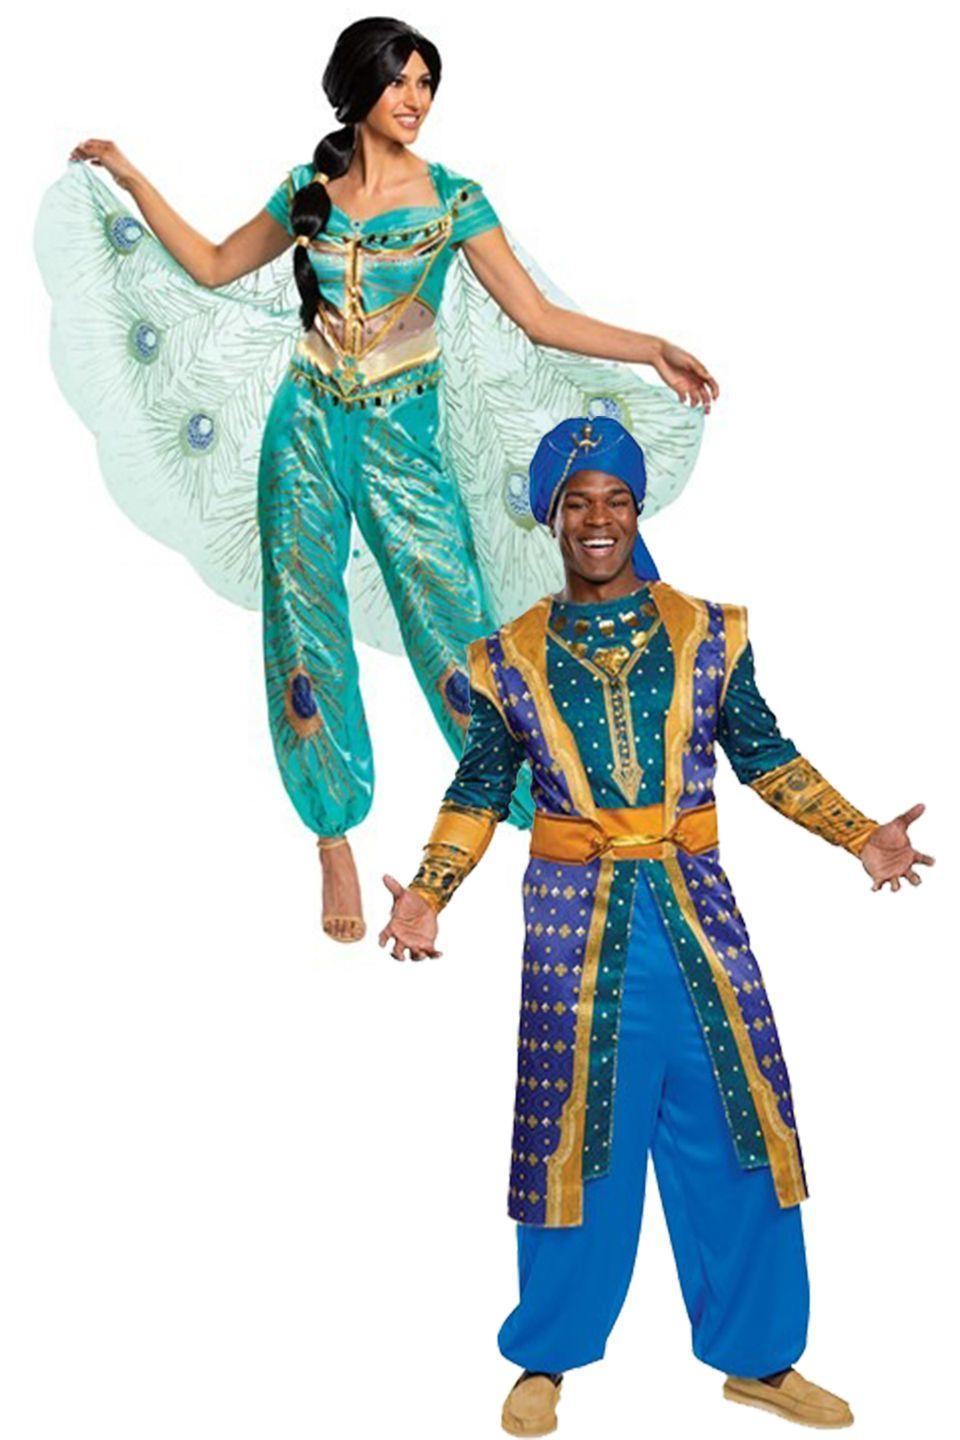 """<p>Who says a princess needs a prince on her arm? The Genie costume is the perfect look for your favorite funny man who can't help cracking jokes.</p><p><a class=""""link rapid-noclick-resp"""" href=""""https://go.redirectingat.com?id=74968X1596630&url=https%3A%2F%2Fwww.halloweencostumes.com%2Fdisney-aladdin-live-action-womens-jasmine-costume.html&sref=https%3A%2F%2Fwww.womansday.com%2Fstyle%2Fg28691602%2Fdisney-couples-costumes%2F"""" rel=""""nofollow noopener"""" target=""""_blank"""" data-ylk=""""slk:SHOP JASMINE COSTUME"""">SHOP JASMINE COSTUME</a></p><p><strong><a class=""""link rapid-noclick-resp"""" href=""""https://go.redirectingat.com?id=74968X1596630&url=https%3A%2F%2Fwww.halloweencostumes.com%2Faladdin-live-action-adult-genie-costume.html&sref=https%3A%2F%2Fwww.womansday.com%2Fstyle%2Fg28691602%2Fdisney-couples-costumes%2F"""" rel=""""nofollow noopener"""" target=""""_blank"""" data-ylk=""""slk:SHOP GENIE COSTUME"""">SHOP GENIE COSTUME</a></strong></p>"""